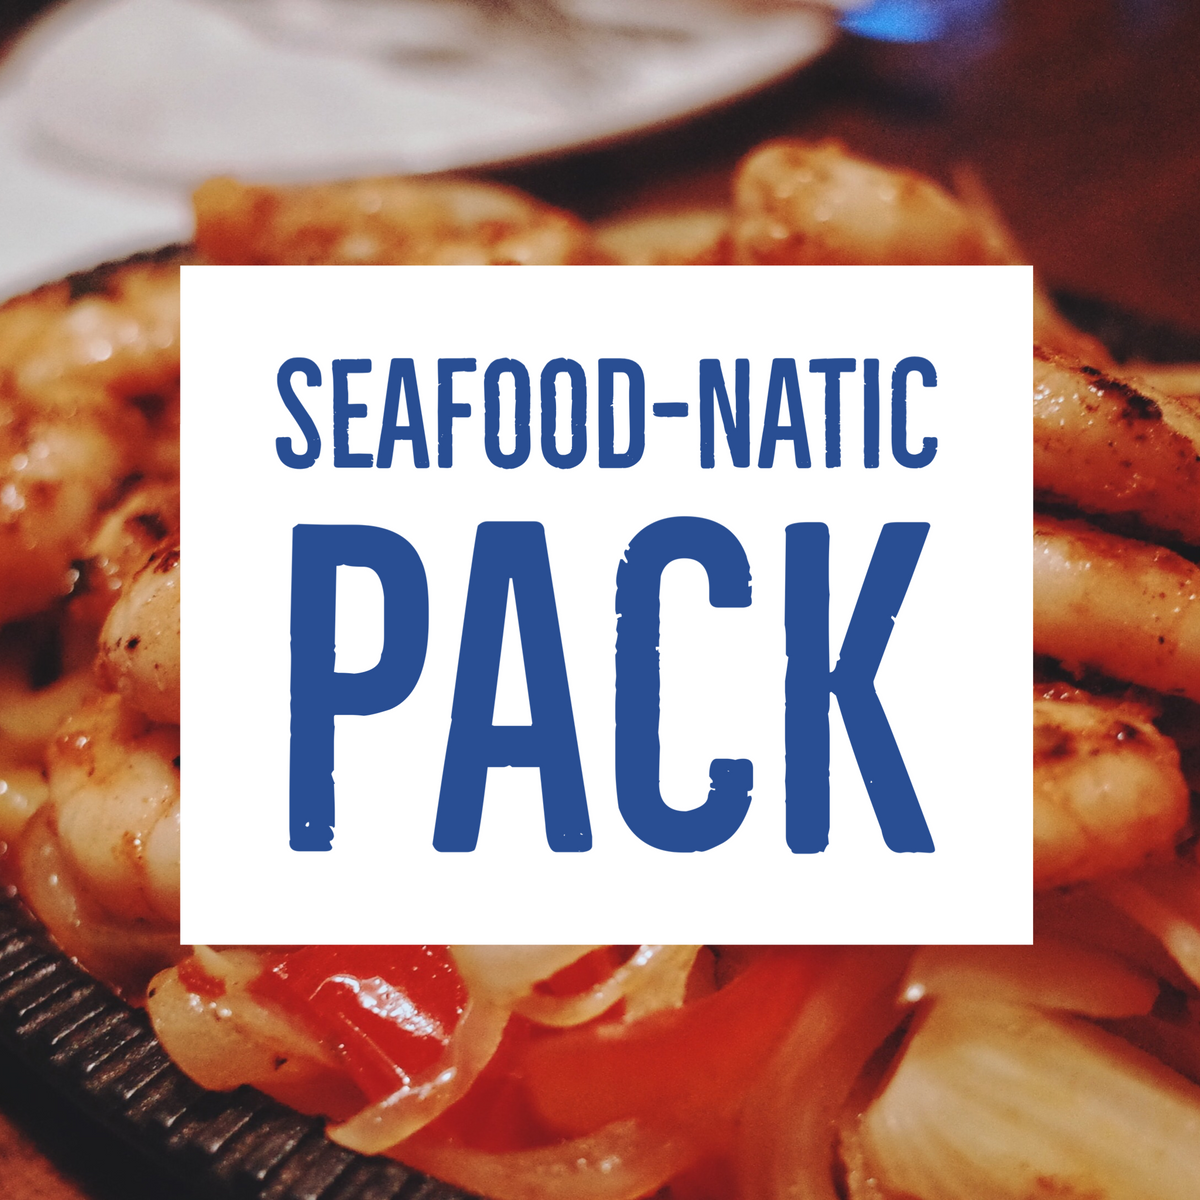 Seafood-natic pack